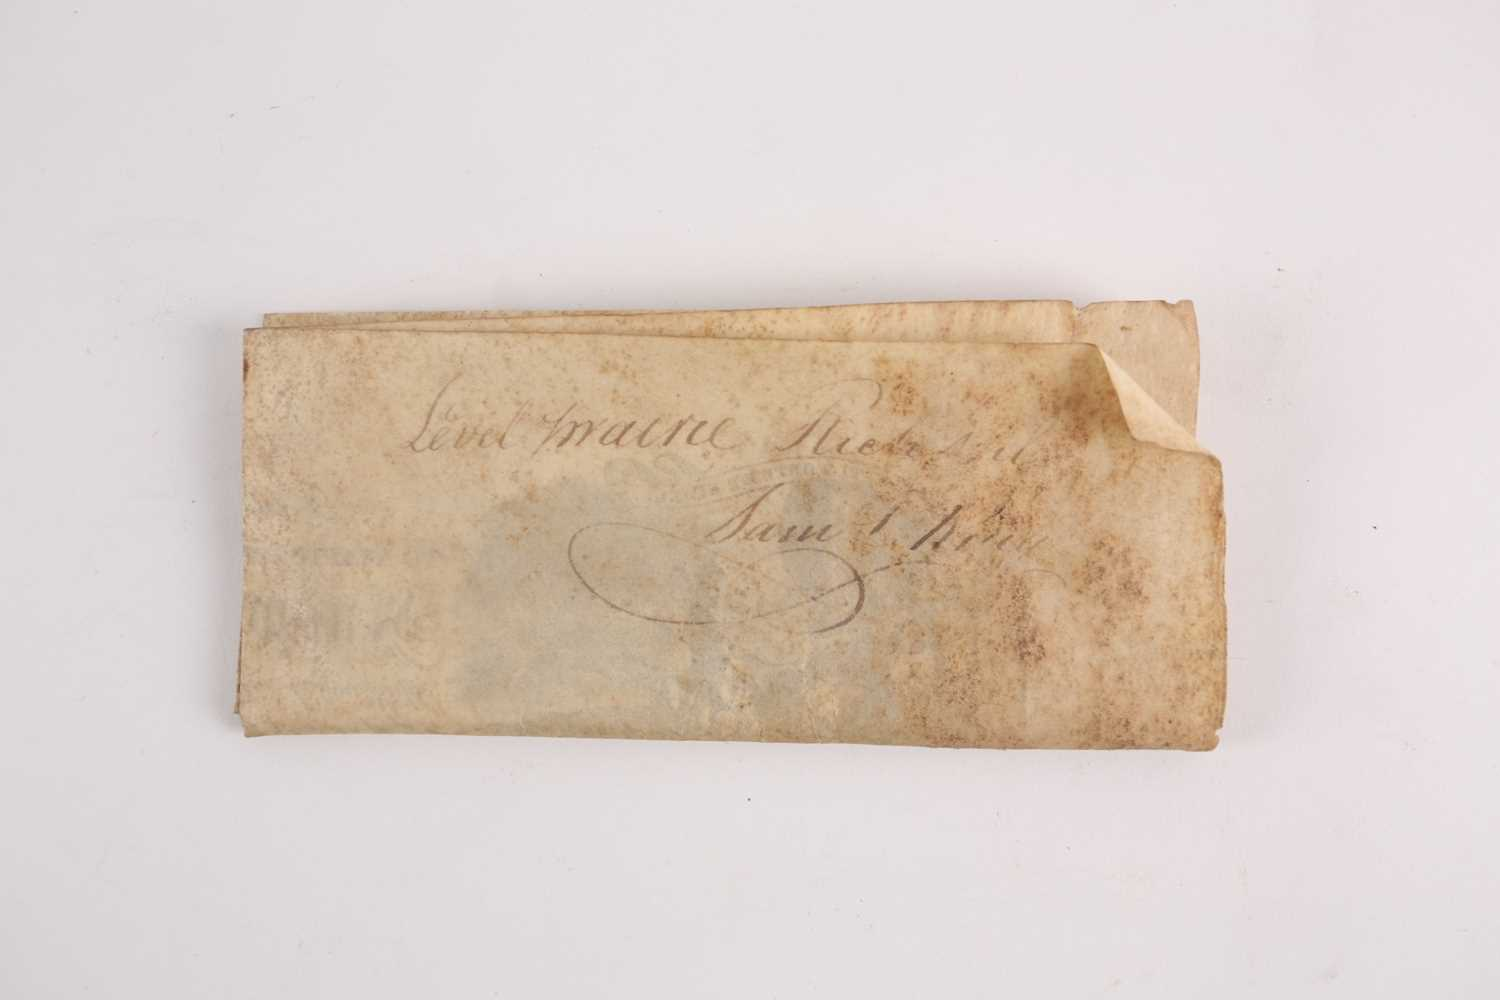 Historical American Interest. An early 19th-century velum land grant indenture signed by James - Image 2 of 4